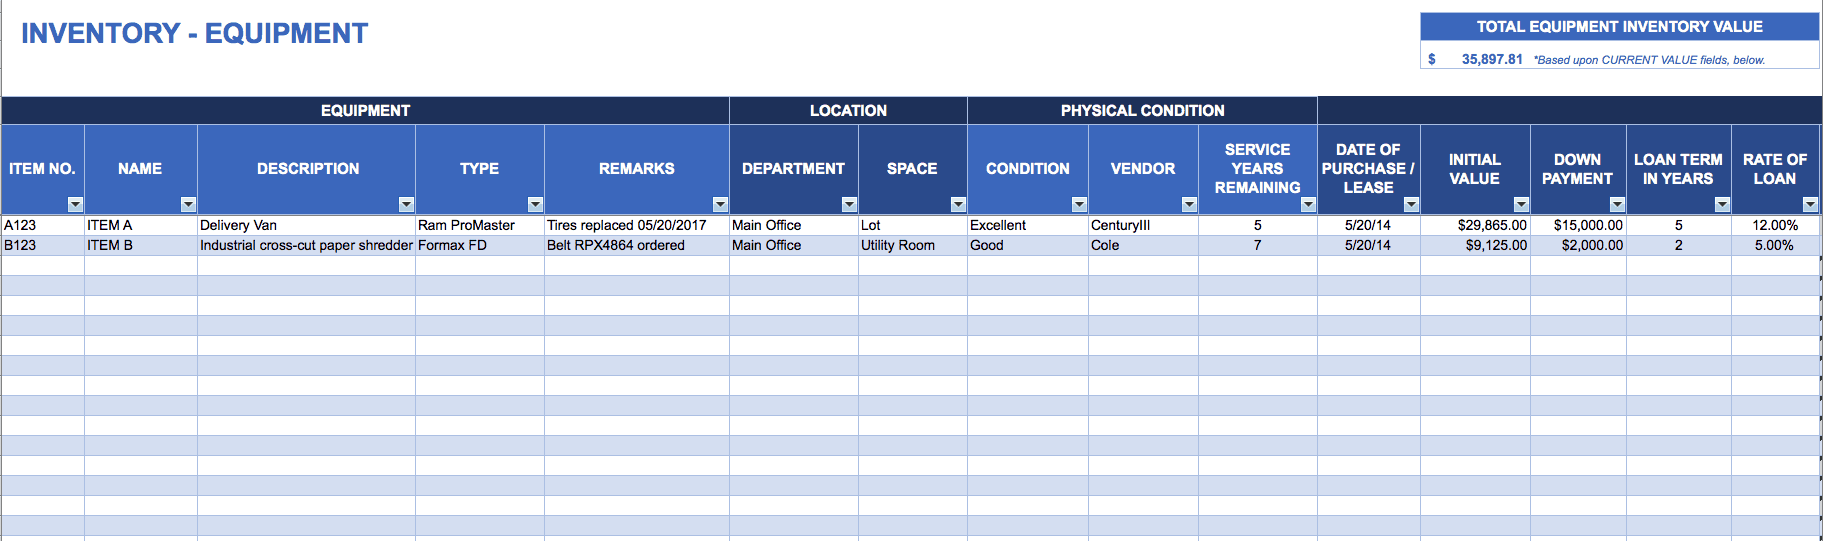 Equipment Inventory Template  Microsoft Office Inventory Template